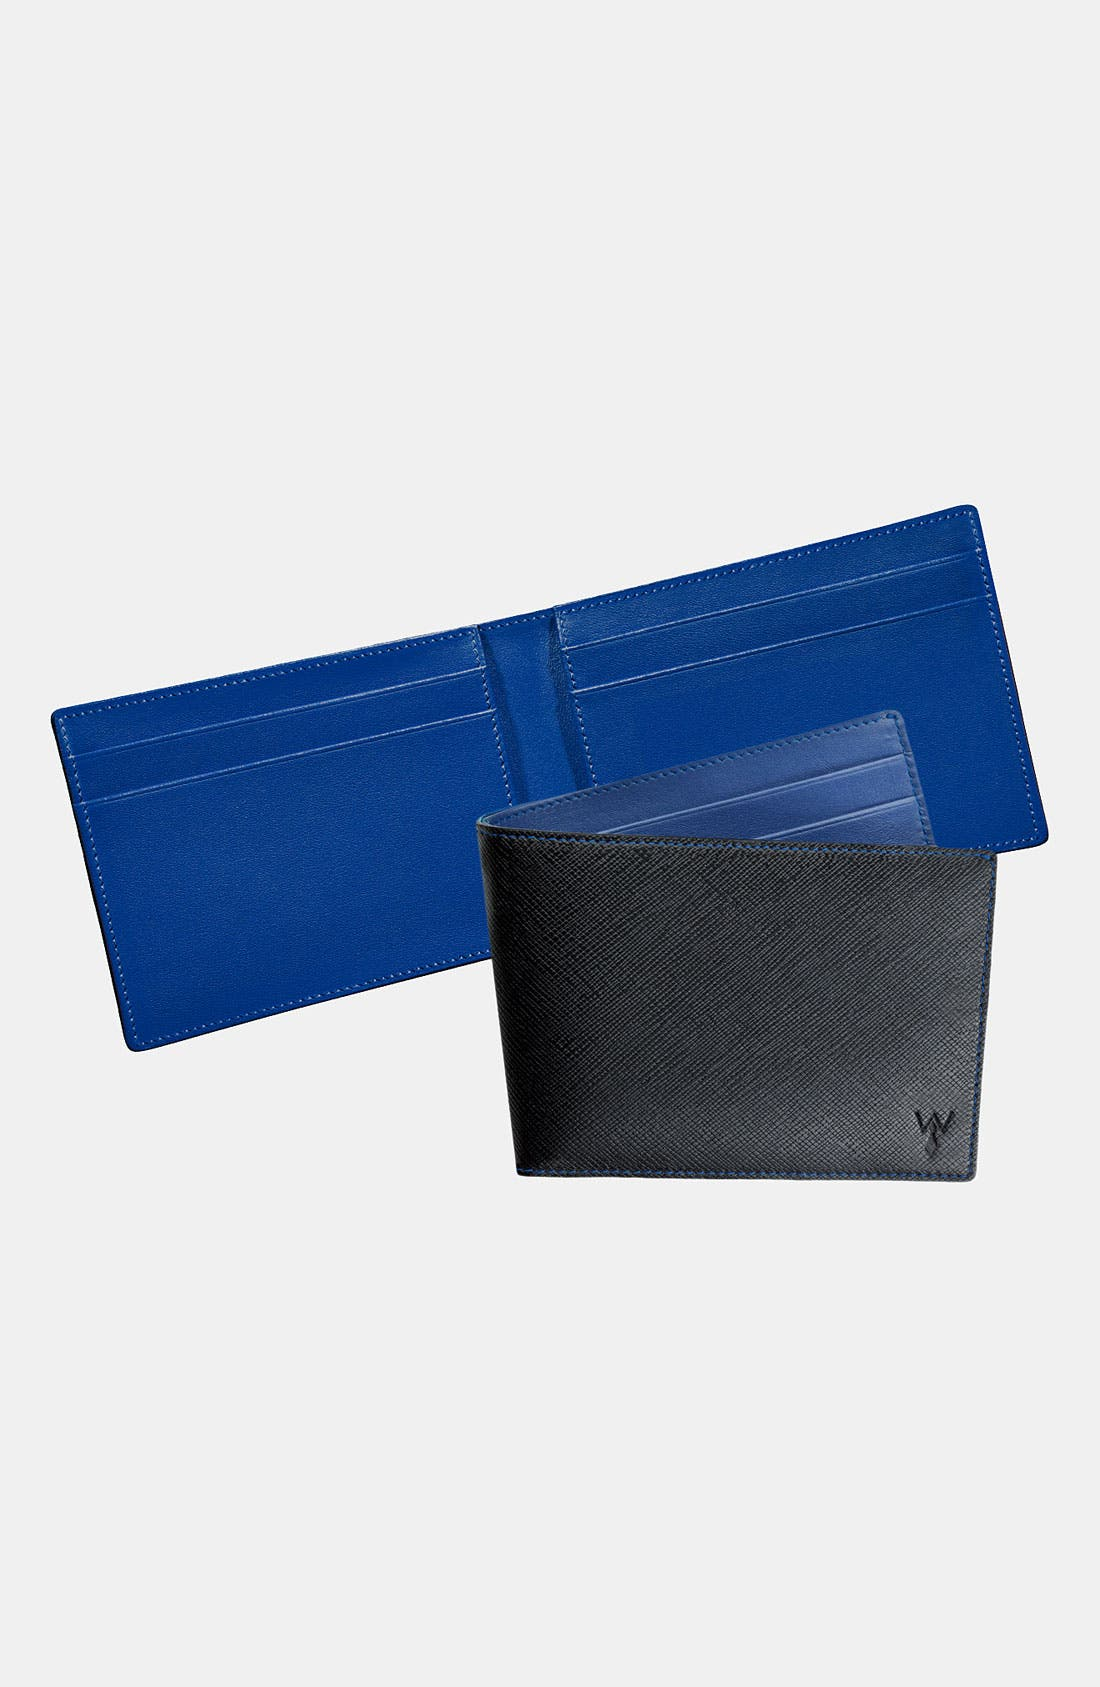 Alternate Image 1 Selected - Würkin Stiffs RFID Blocker Wallet